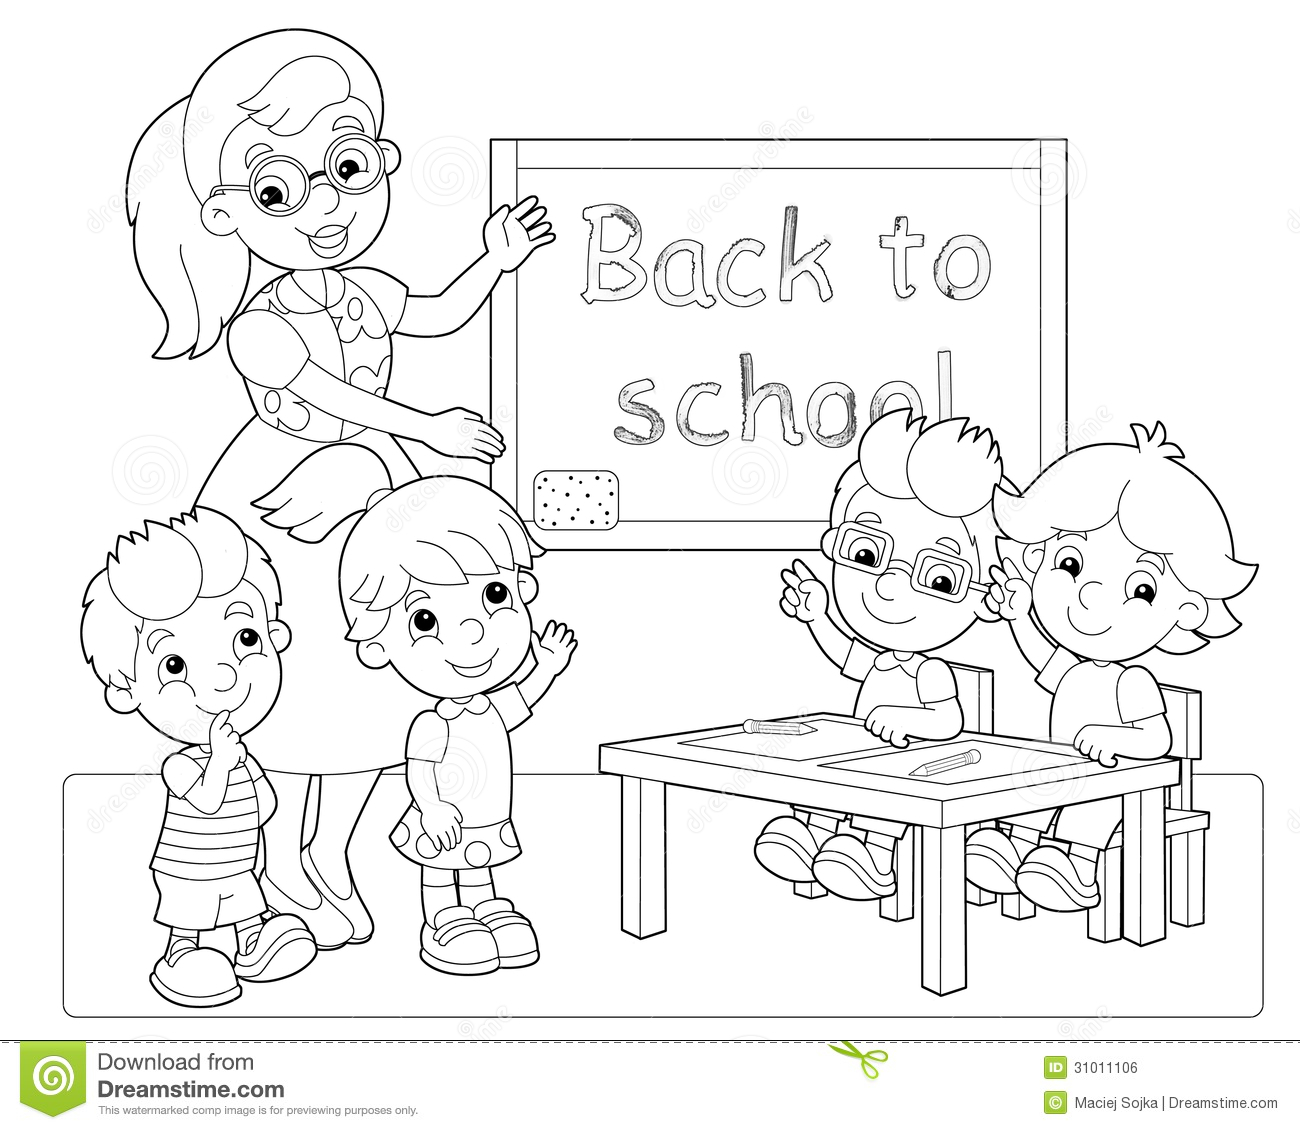 The Page With Exercises For Kids Coloring Book